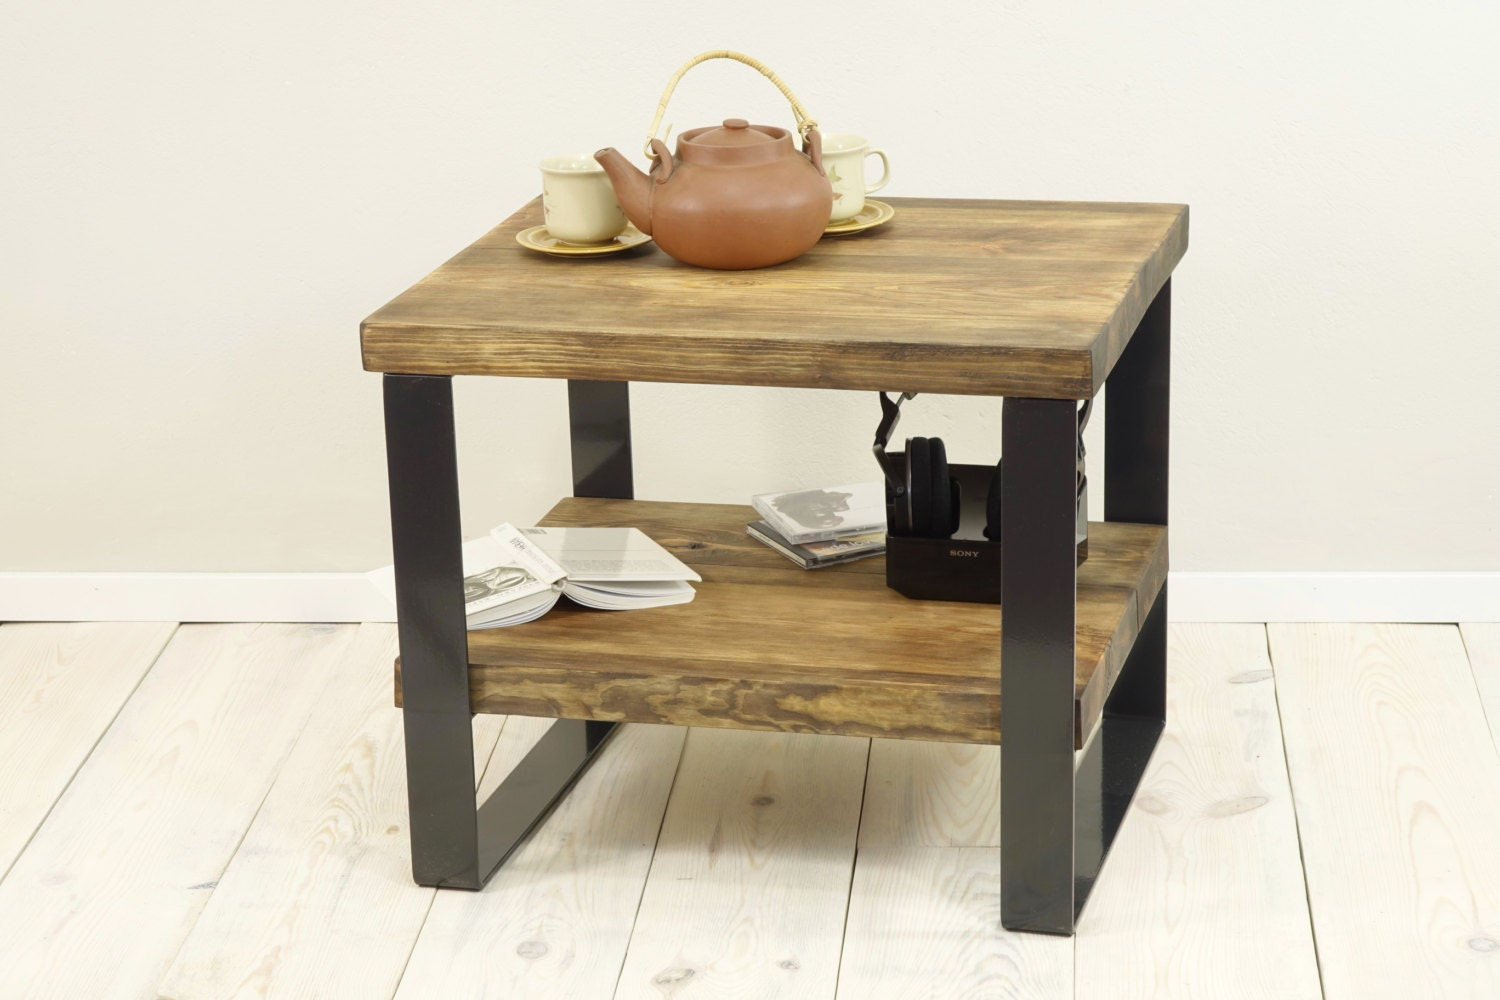 Reclaimed wood side table 2 level coffee table plank coffee reclaimed wood side table 2 level coffee table plank coffee table industrial end table coffee table storage geotapseo Choice Image